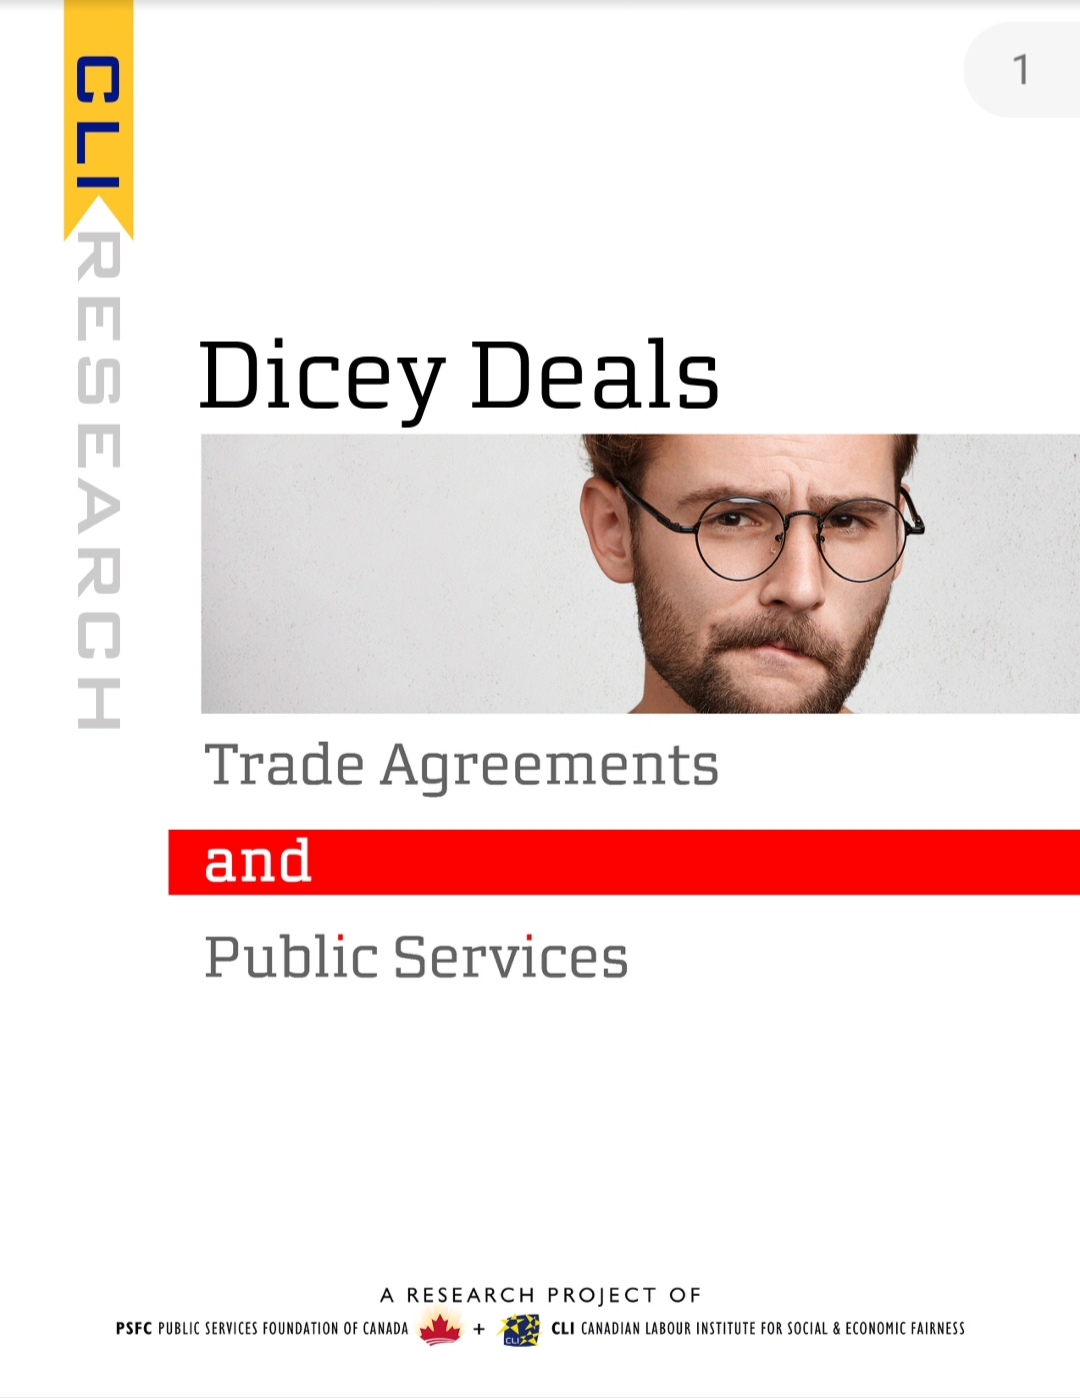 Dicey Deals: Trade Agreements and Public Services